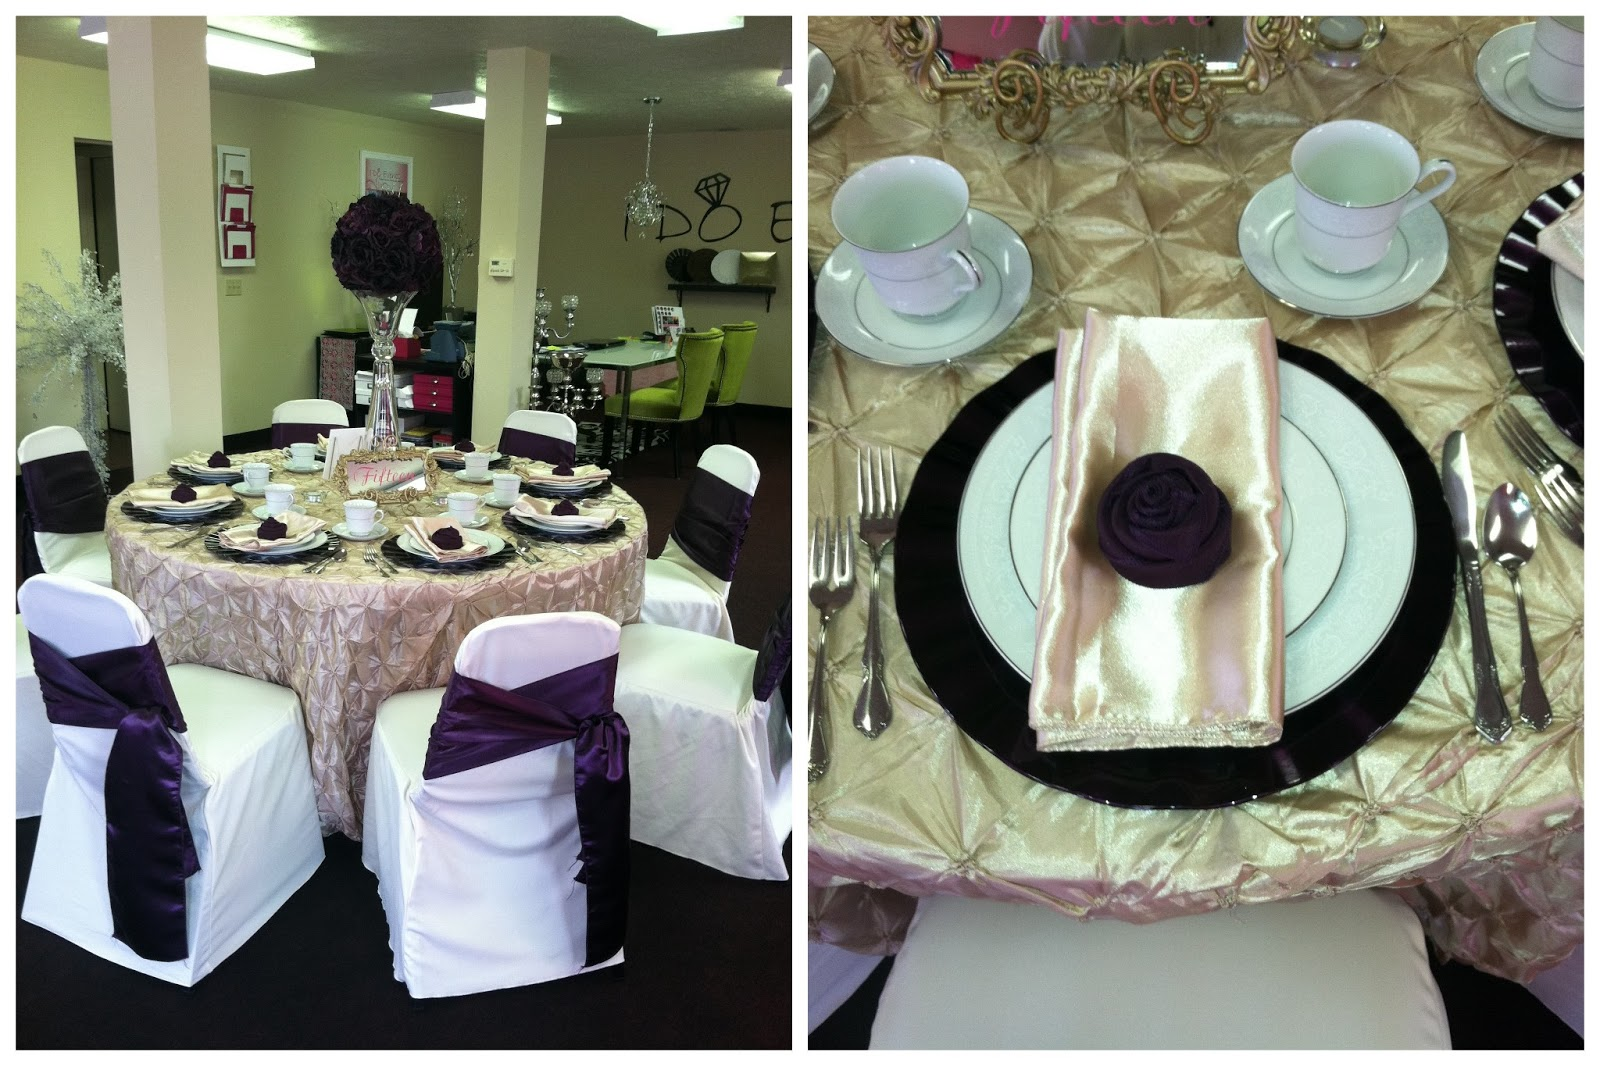 incredible Pinchwheel Tablecloth Part - 11: (Champagne Pinchwheel Linens, Ivory Chair Covers w- Plum Satin Wrap Knot,  Plum Ruffle Charger Plates, Plum Poly Tulip Napkins, Elle Vase and Plum  Rose Ball)